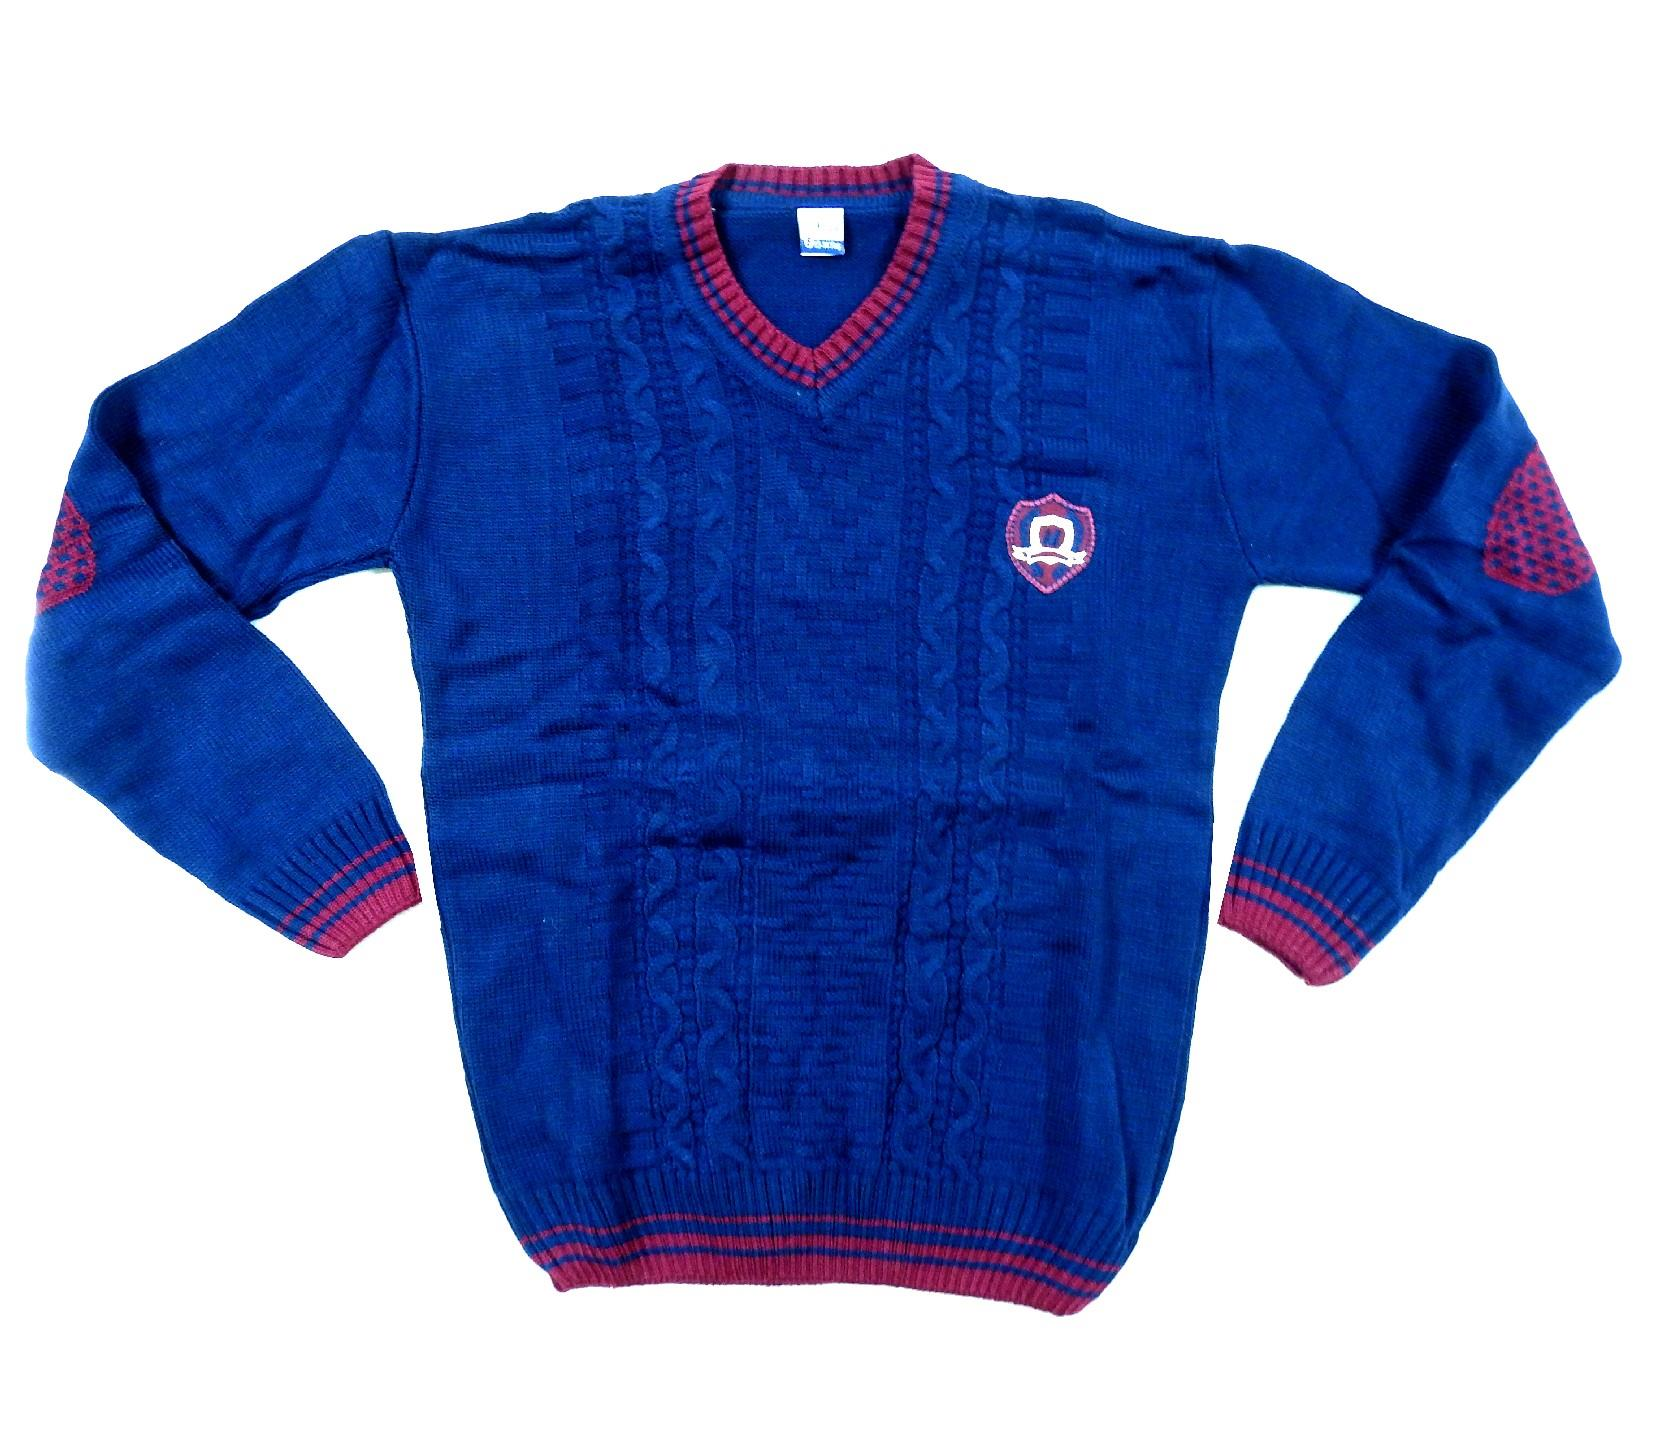 ELBOW PATCHED V COLLAR DESIGN SWEATER FOR BOY (10-12--14 AGE)